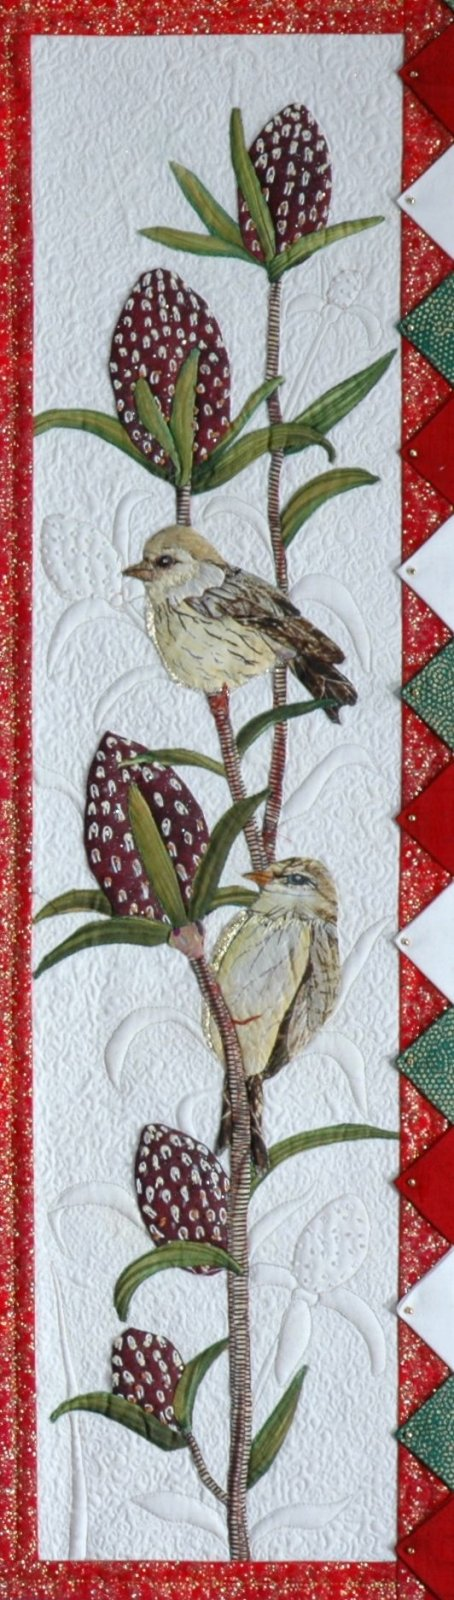 Yellow finches block pattern